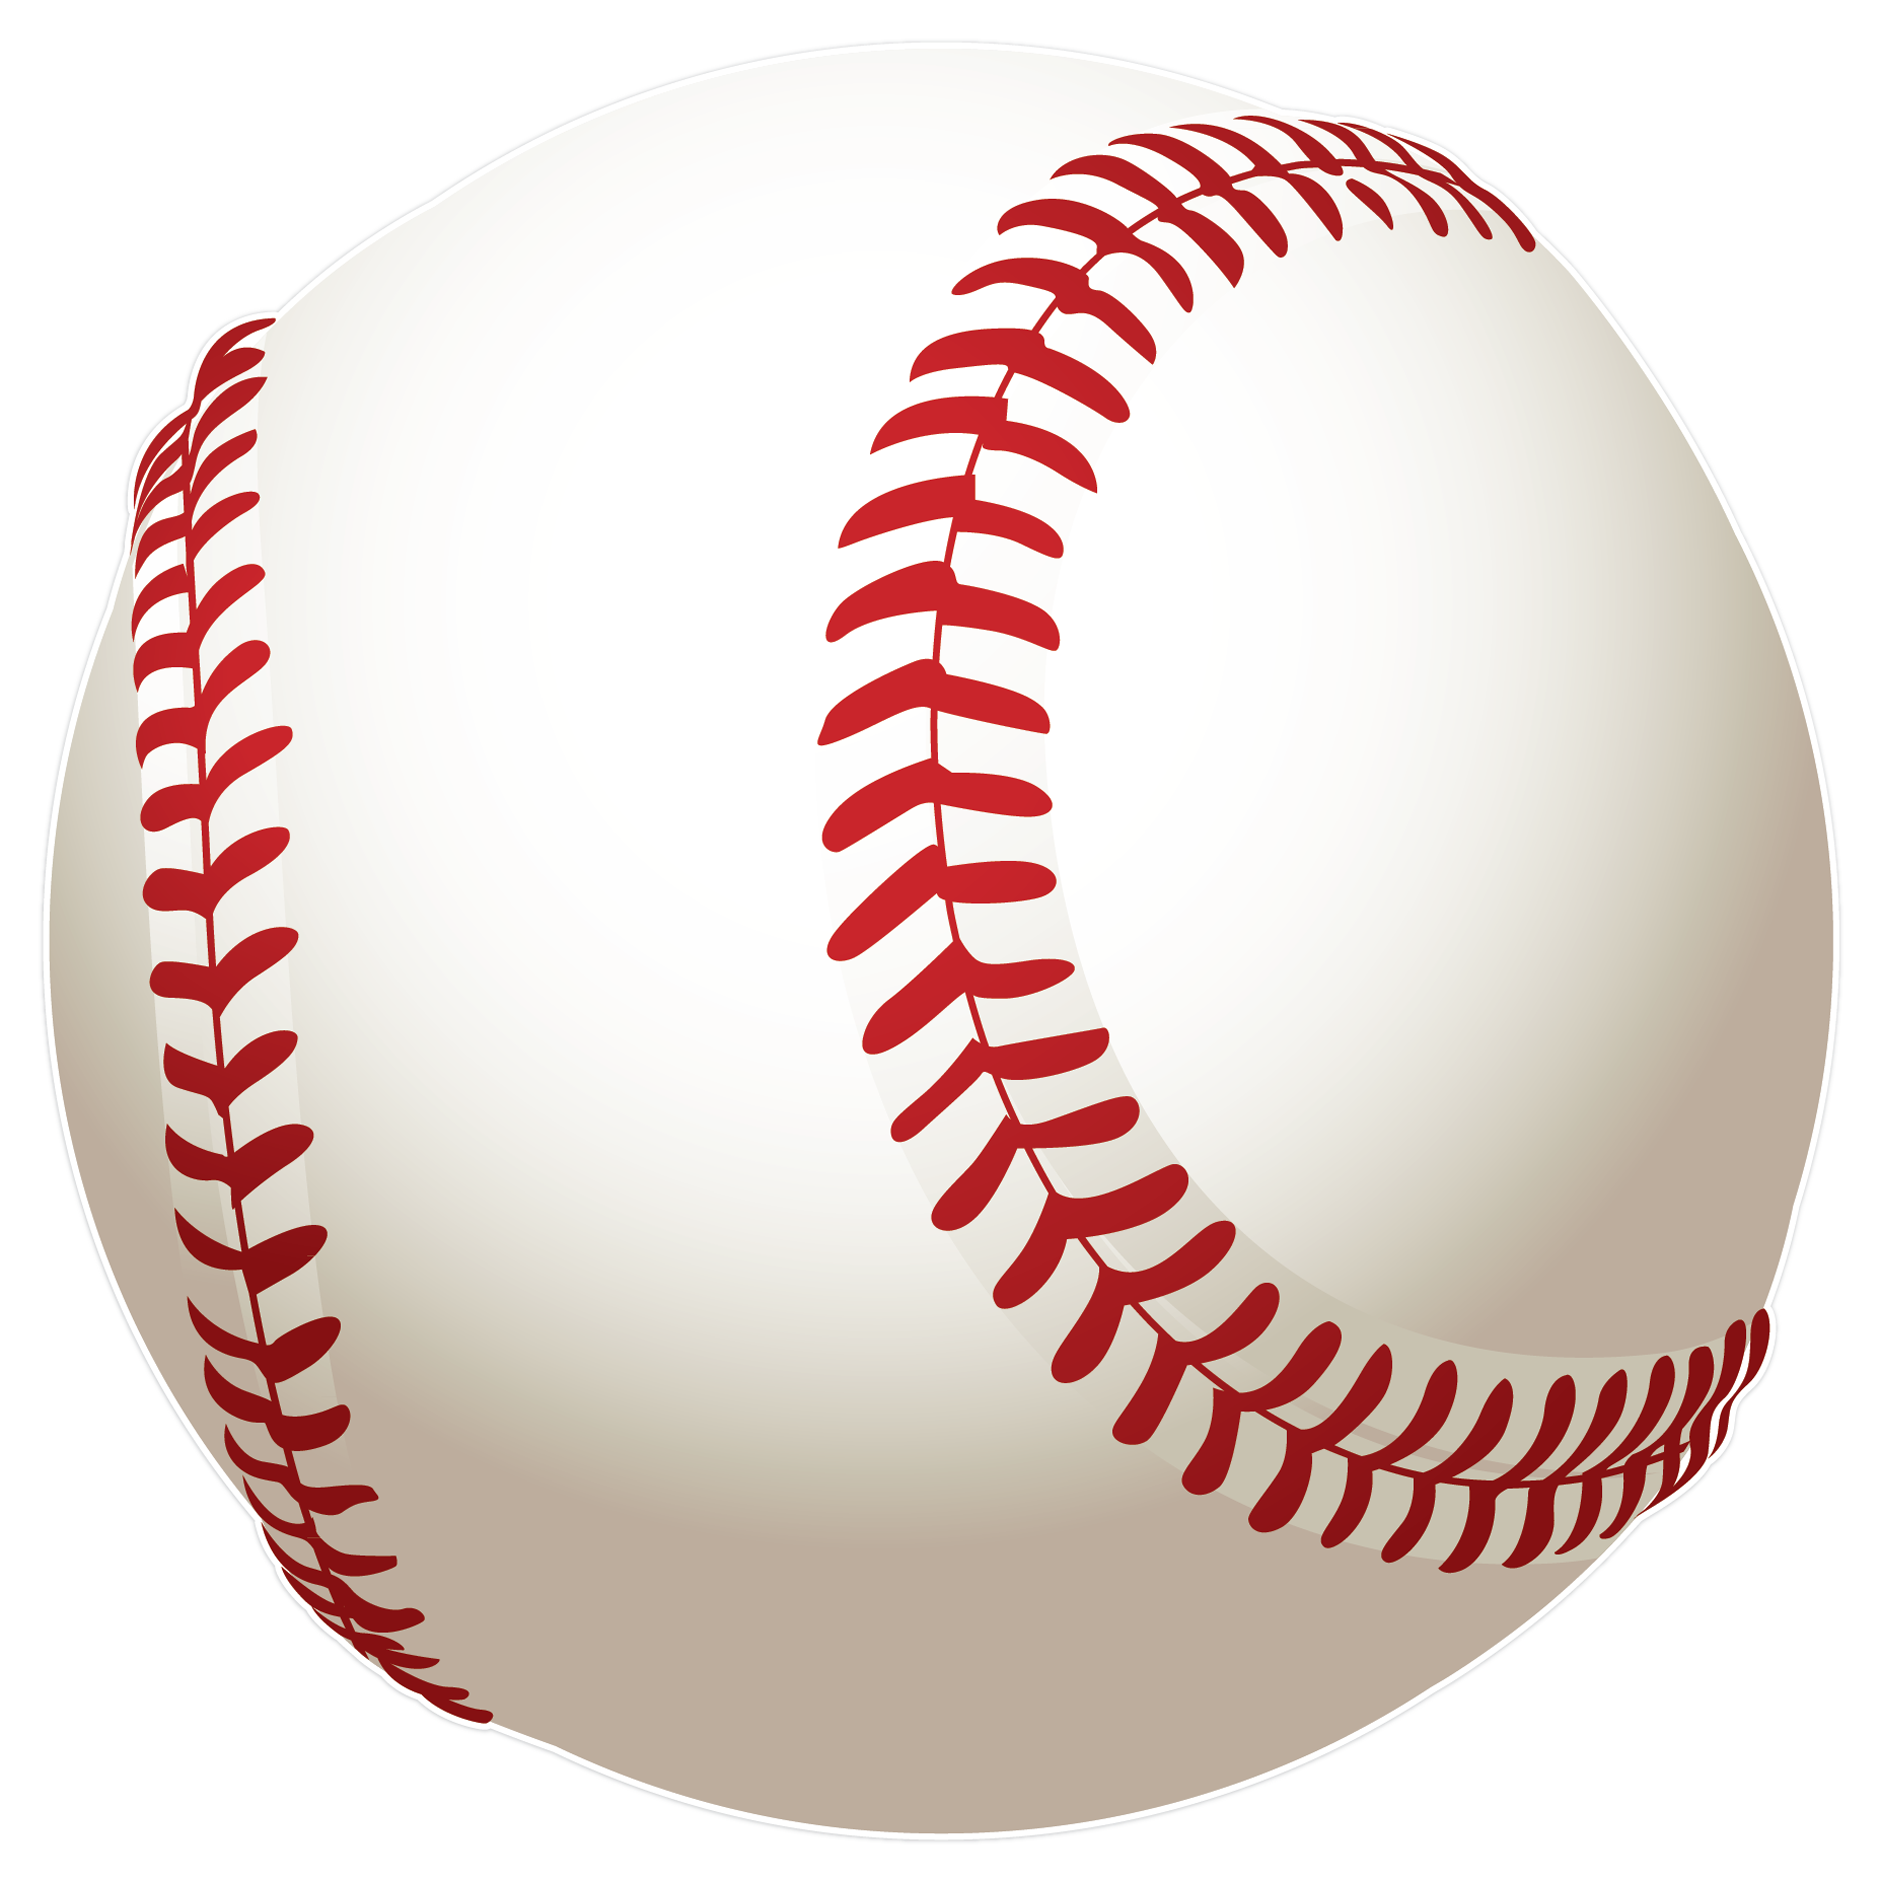 pin Baseball clipart clear background #6 - Baseball HD PNG